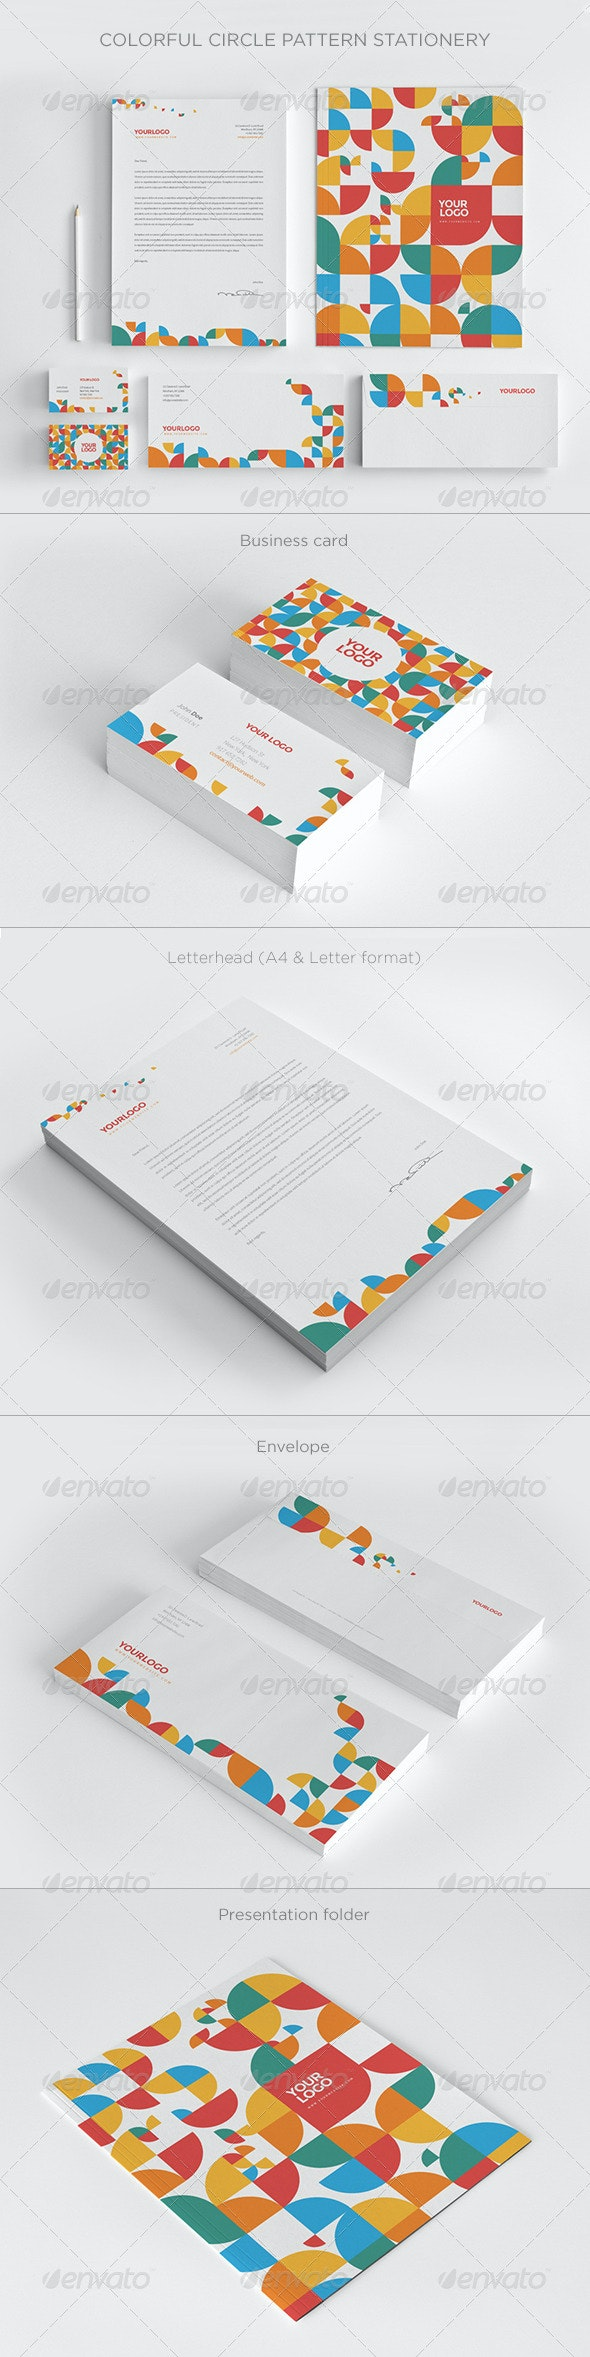 Colorful Circle Pattern Stationery - Print Templates